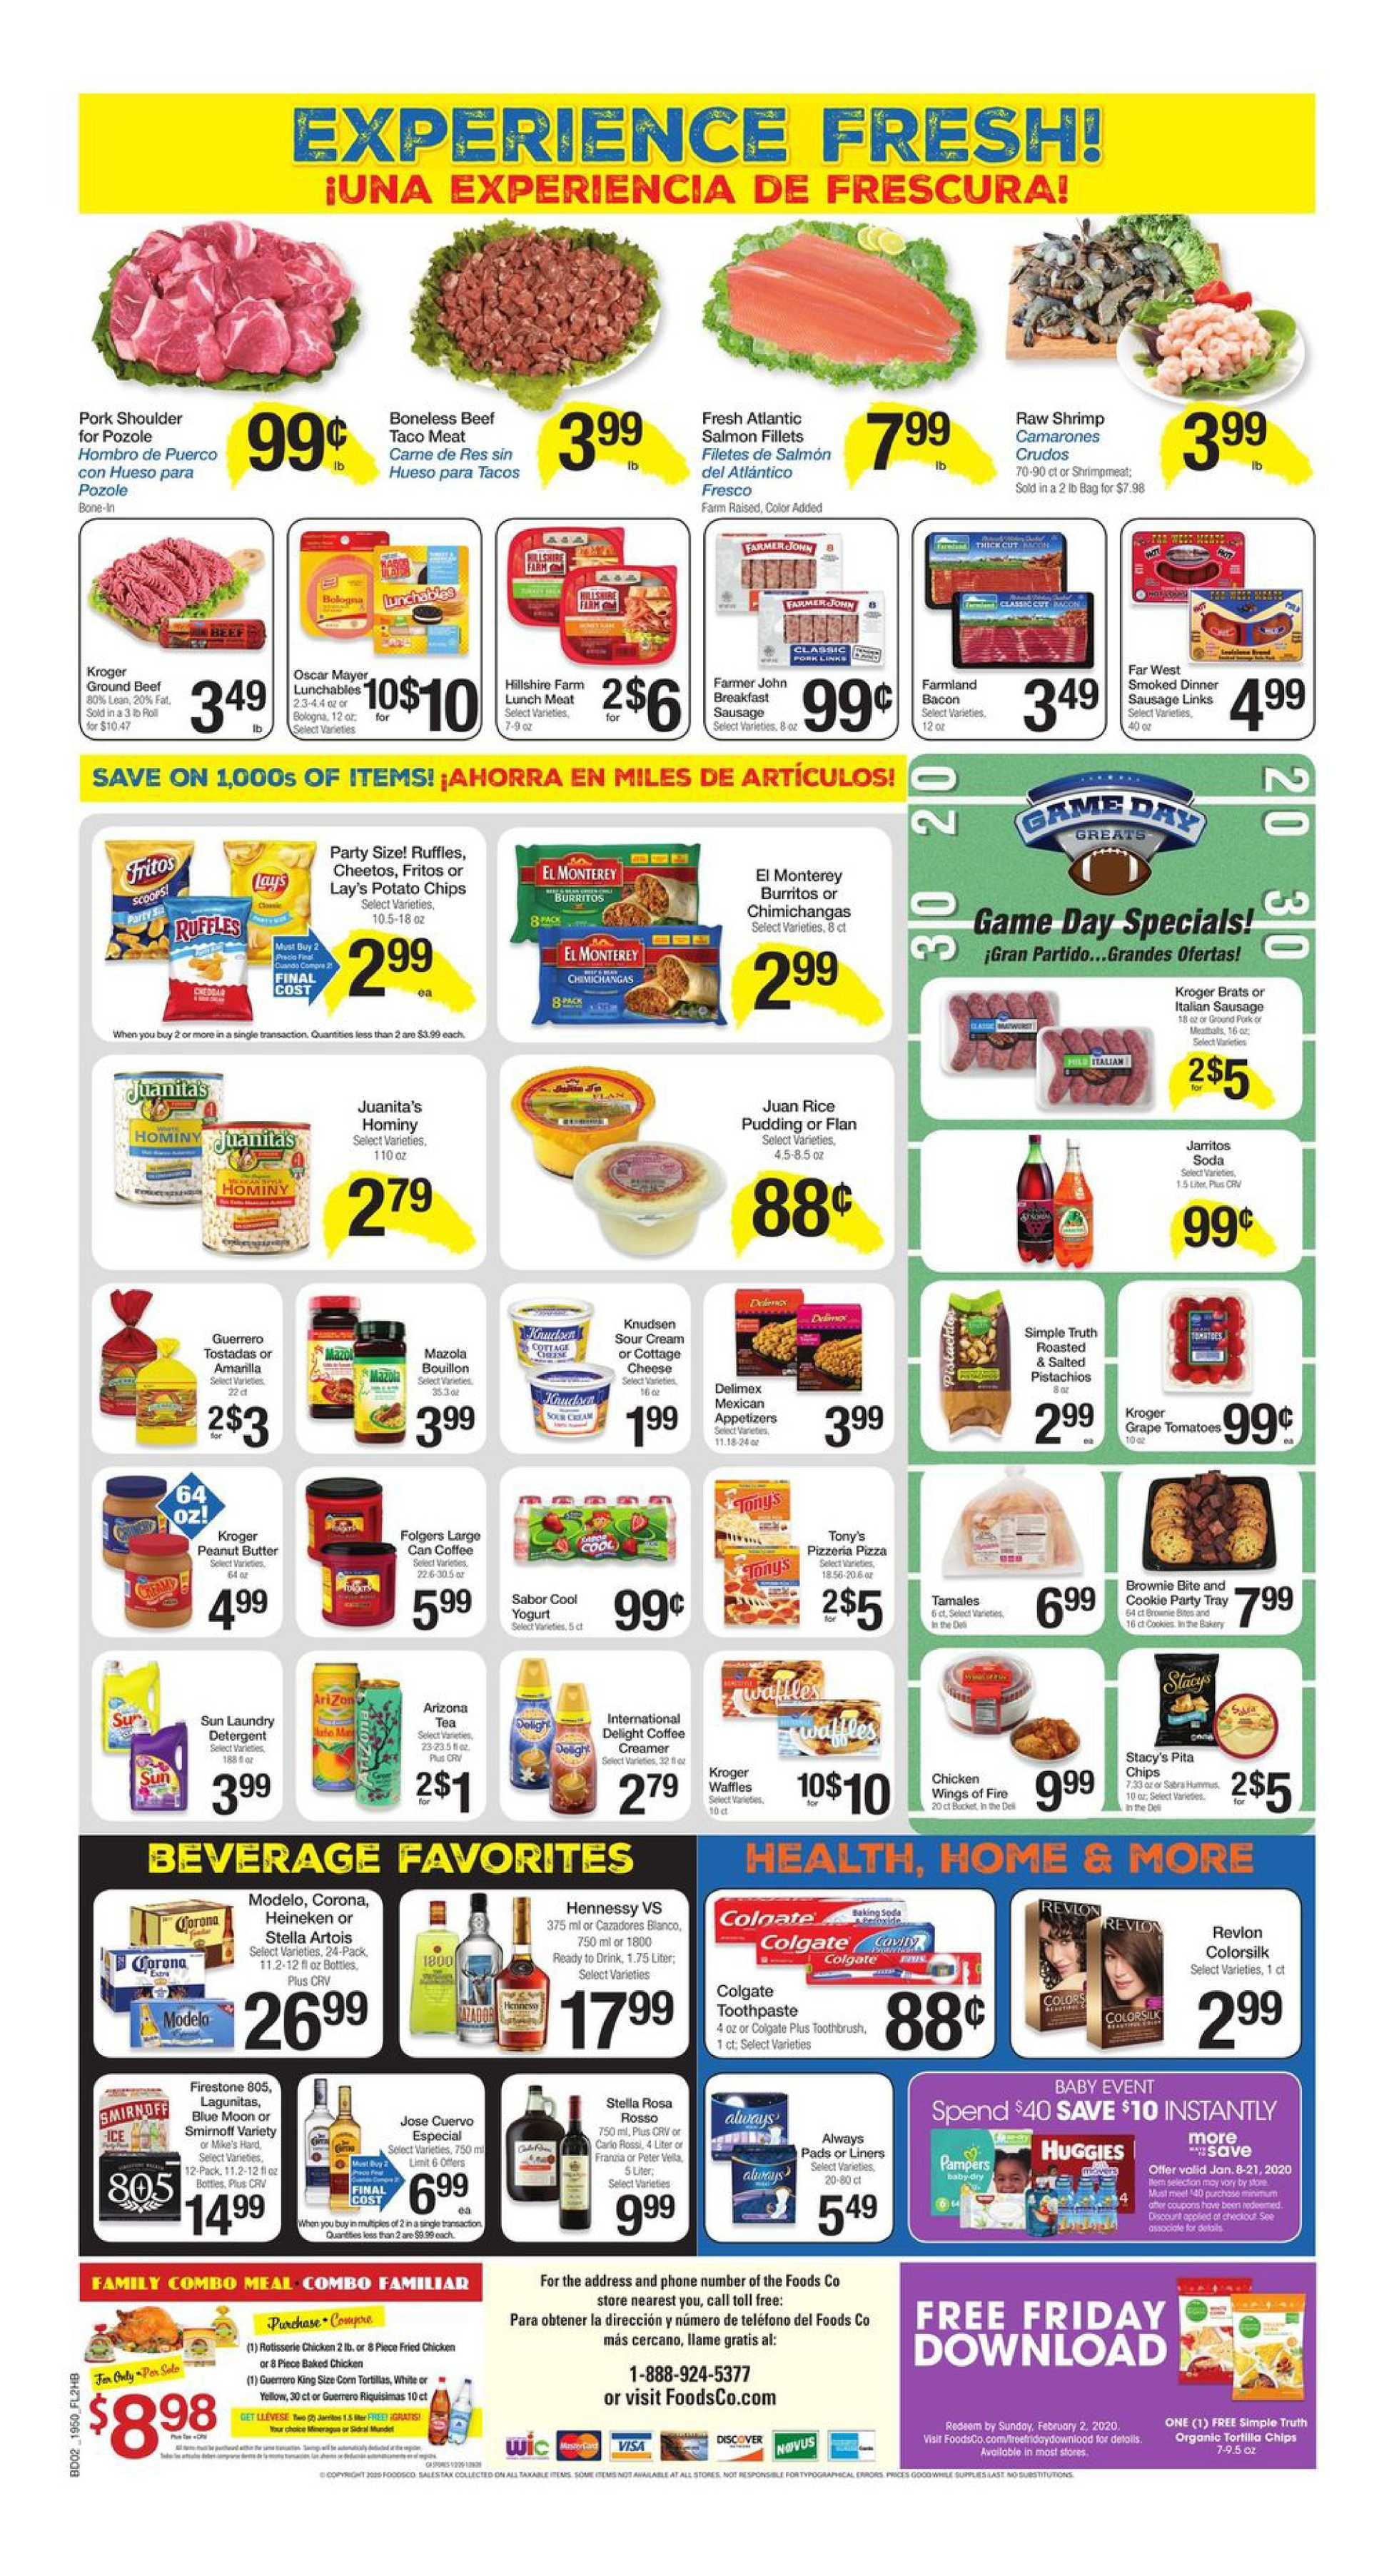 Foods Co. - promo starting from 01/15/20 to 01/21/20 - page 2. The promotion includes potato, potato, tostadas, rossi, tostadas, rossi